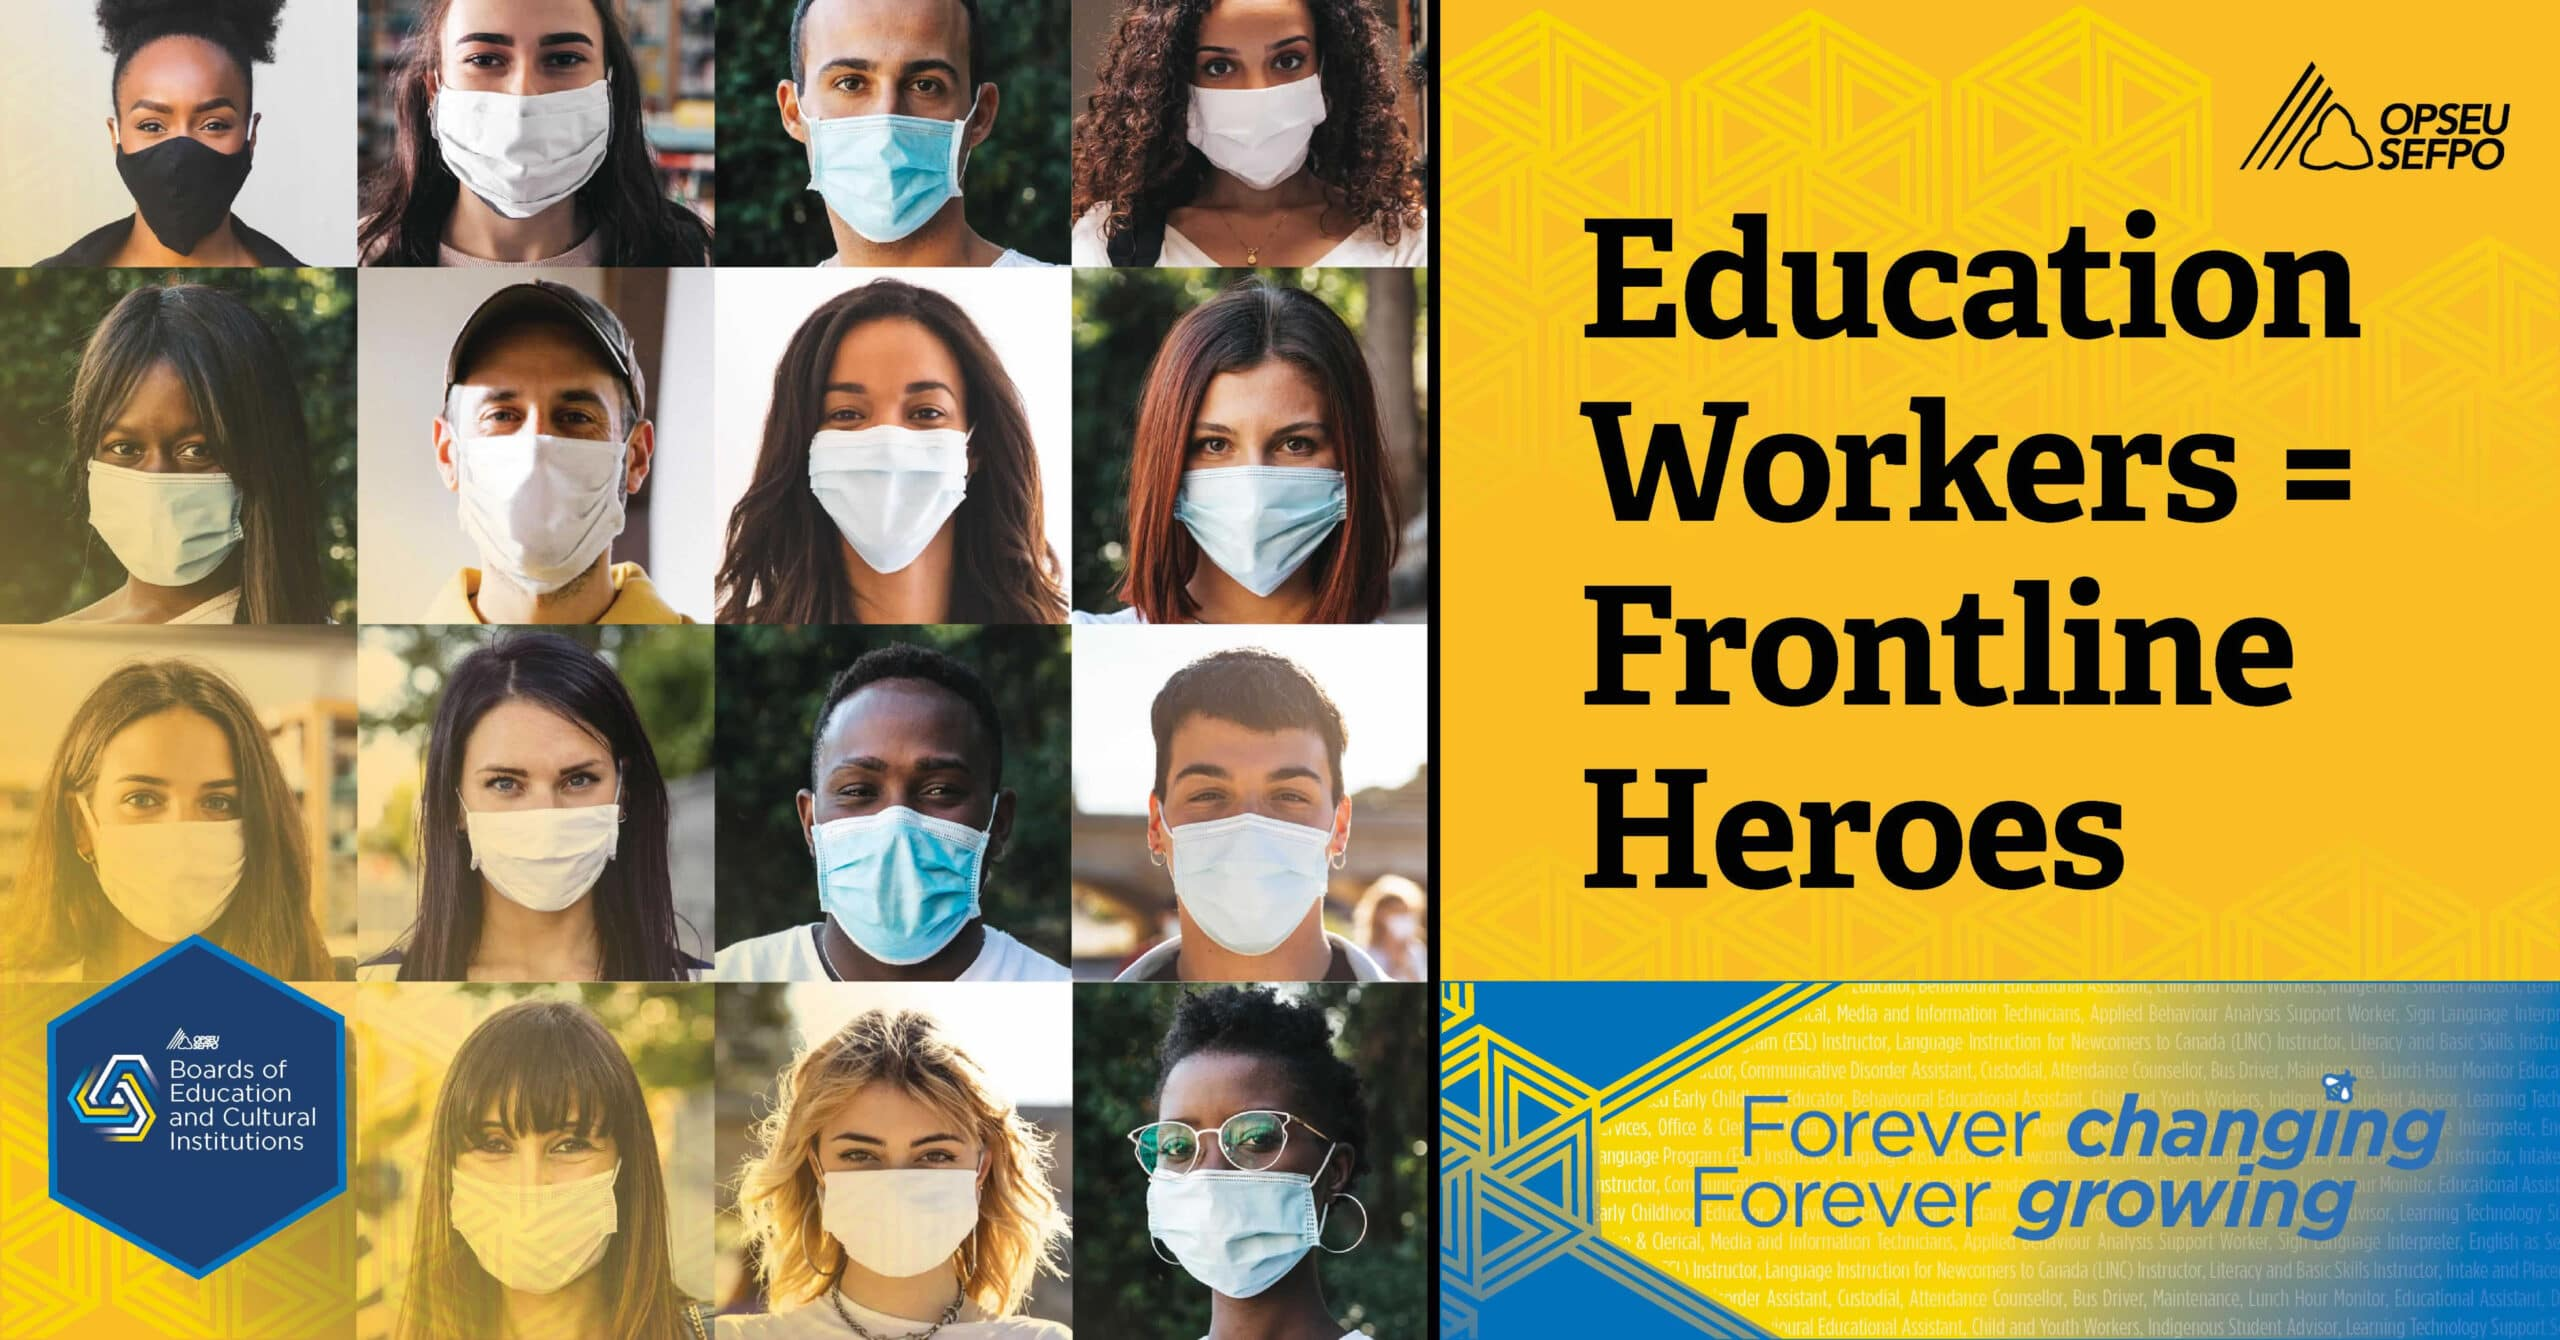 15 people wearing masks with the text: Education Workers = Frontline Heroes